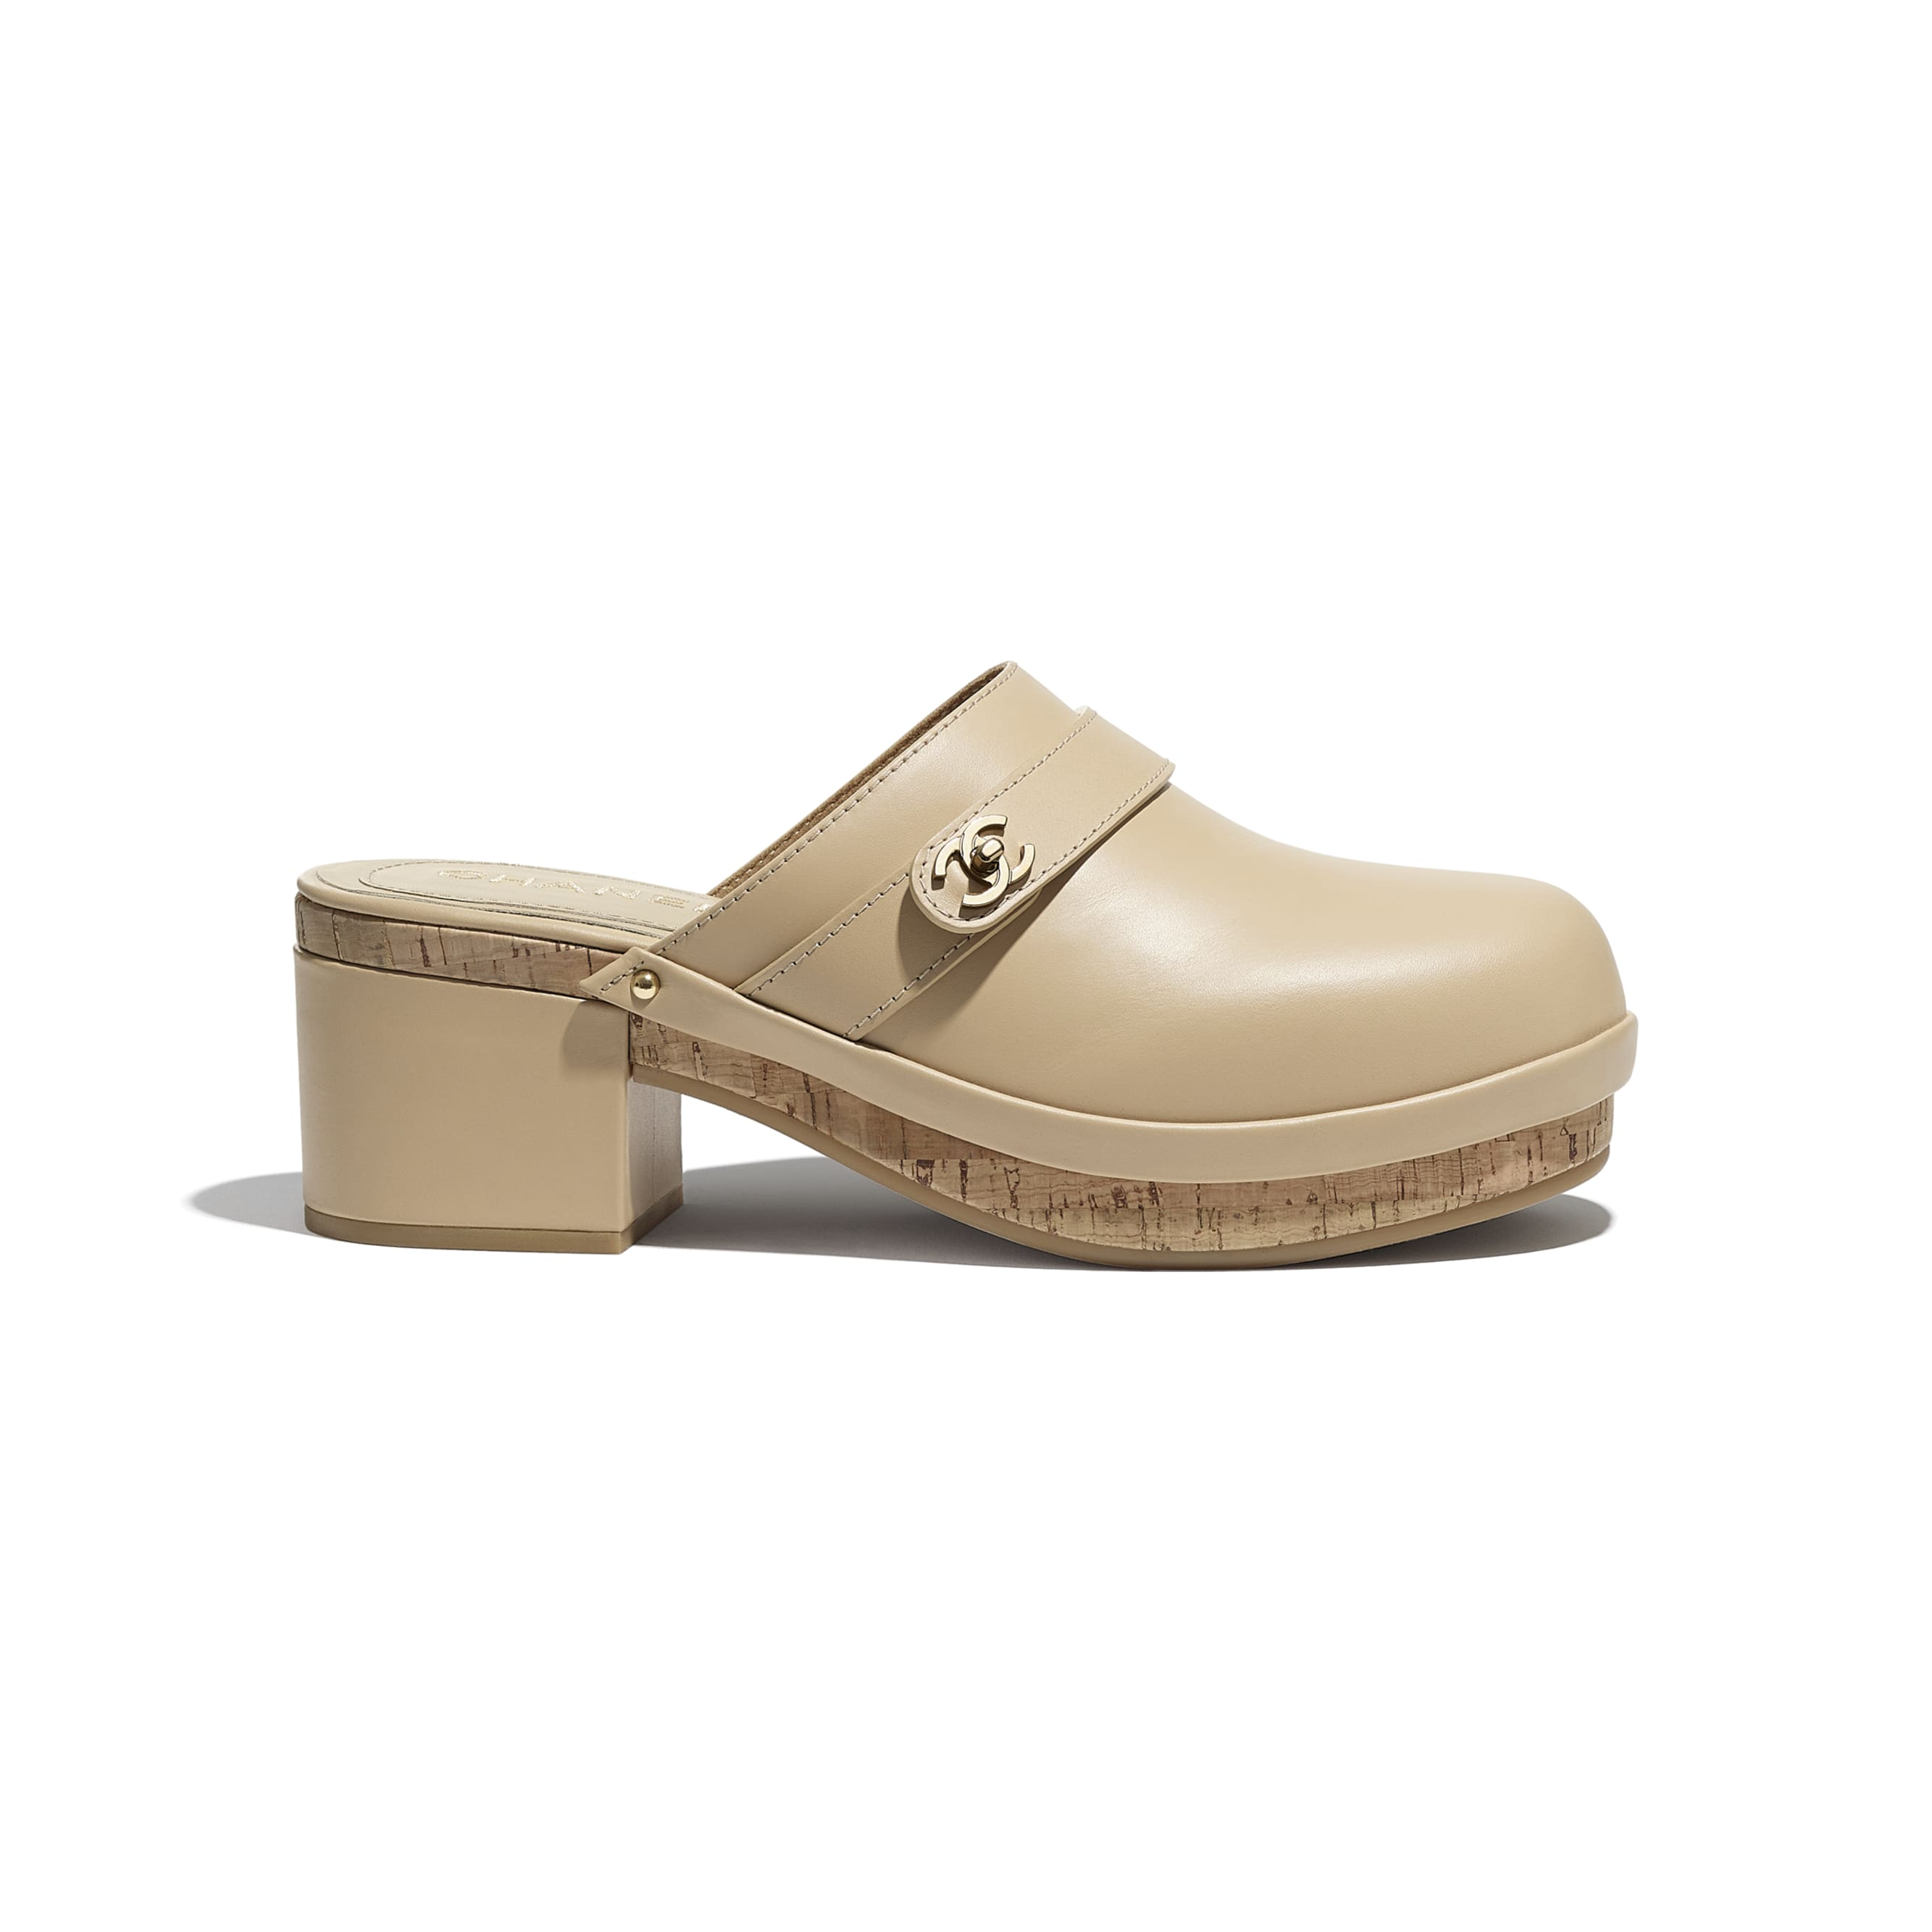 Clogs - Beige - Calfskin - CHANEL - Default view - see standard sized version